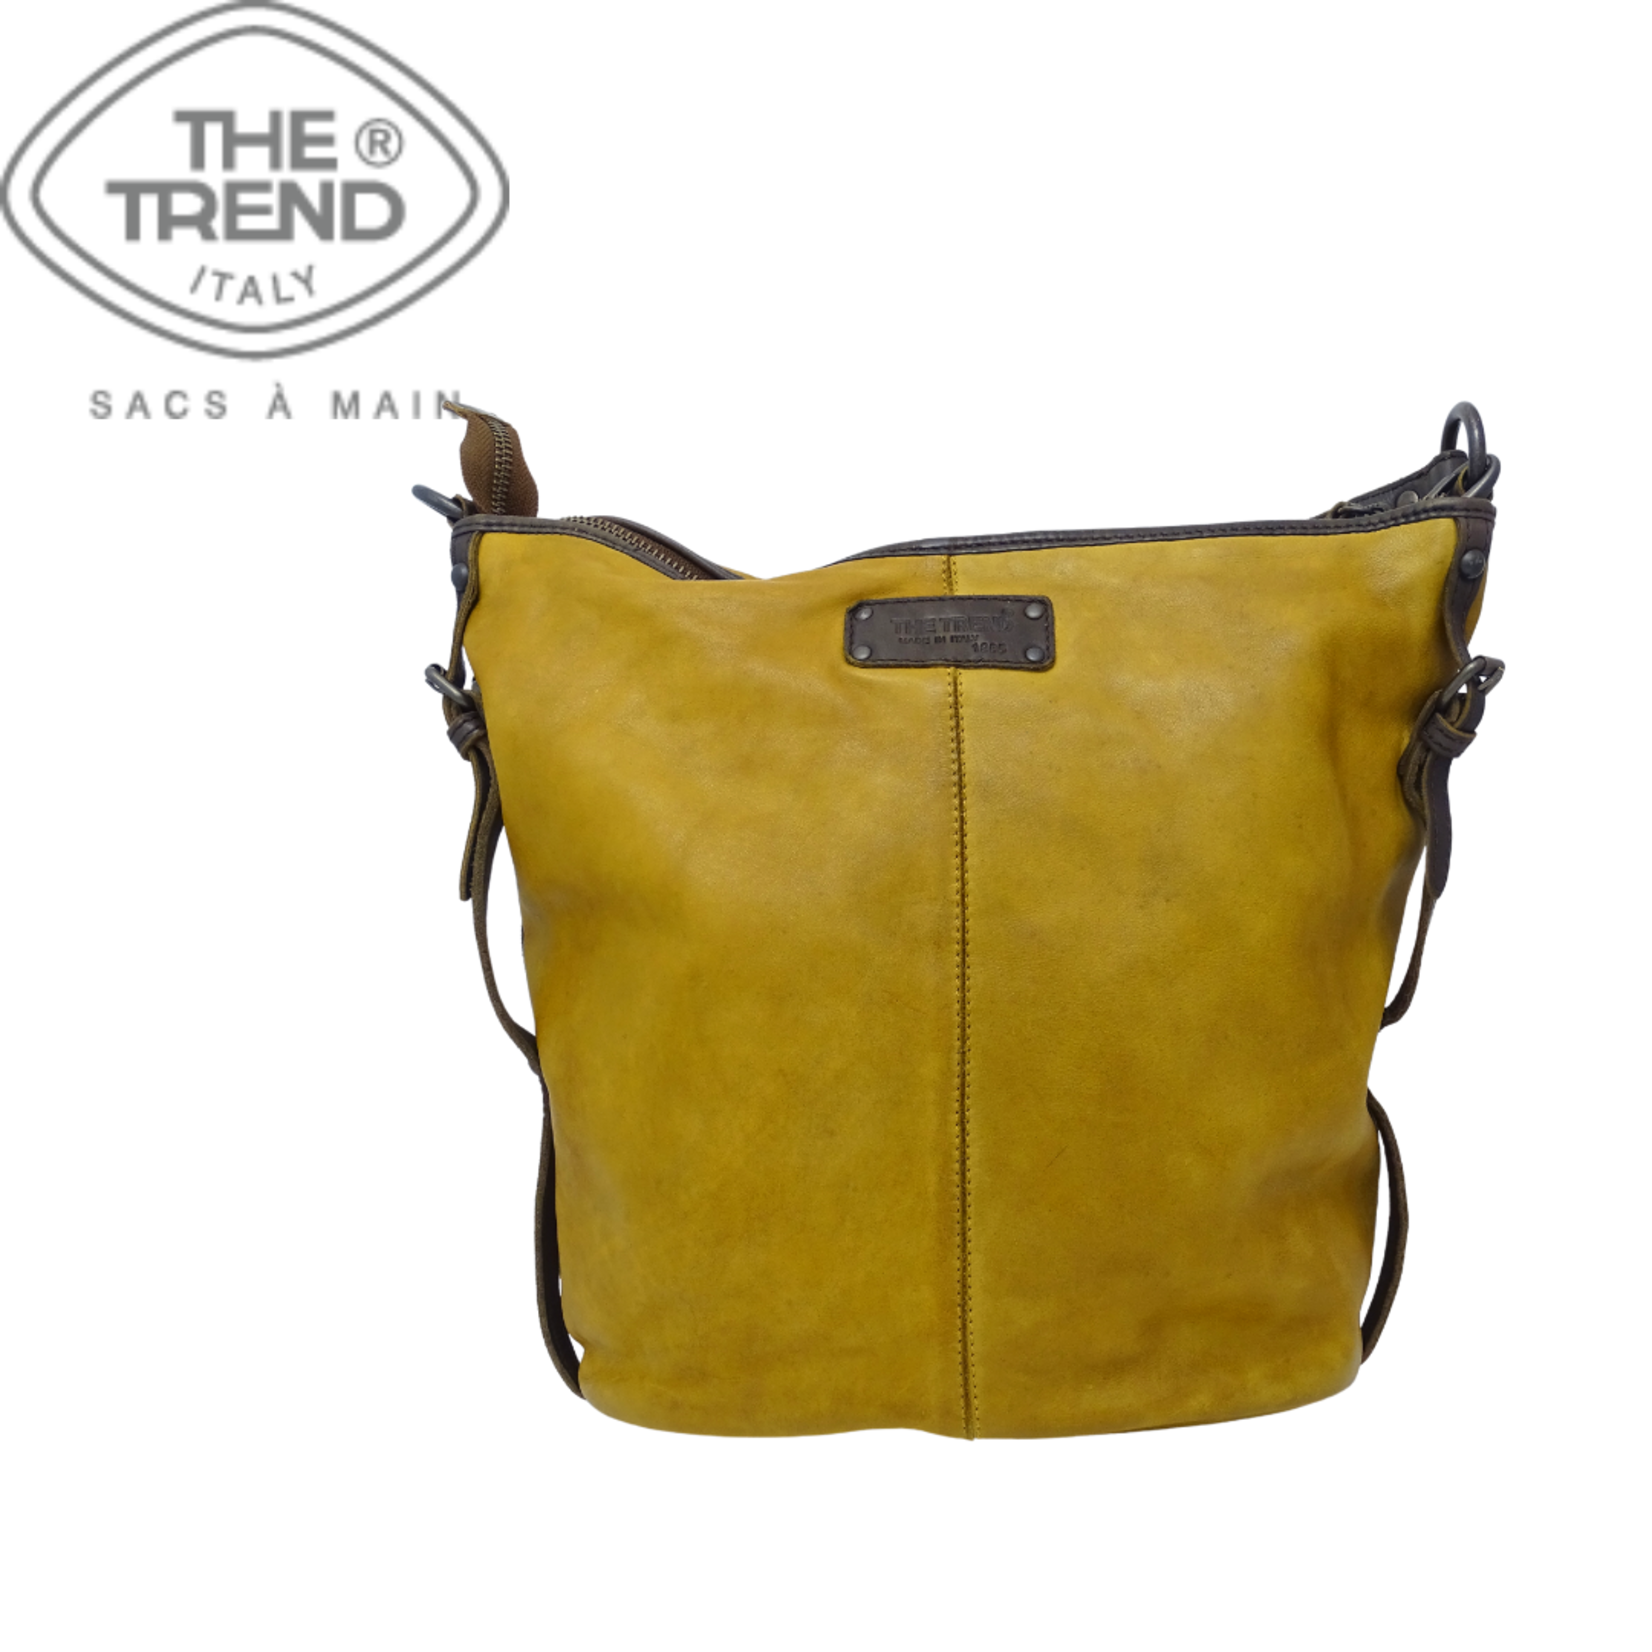 The Trend The Trend 22354 mustard